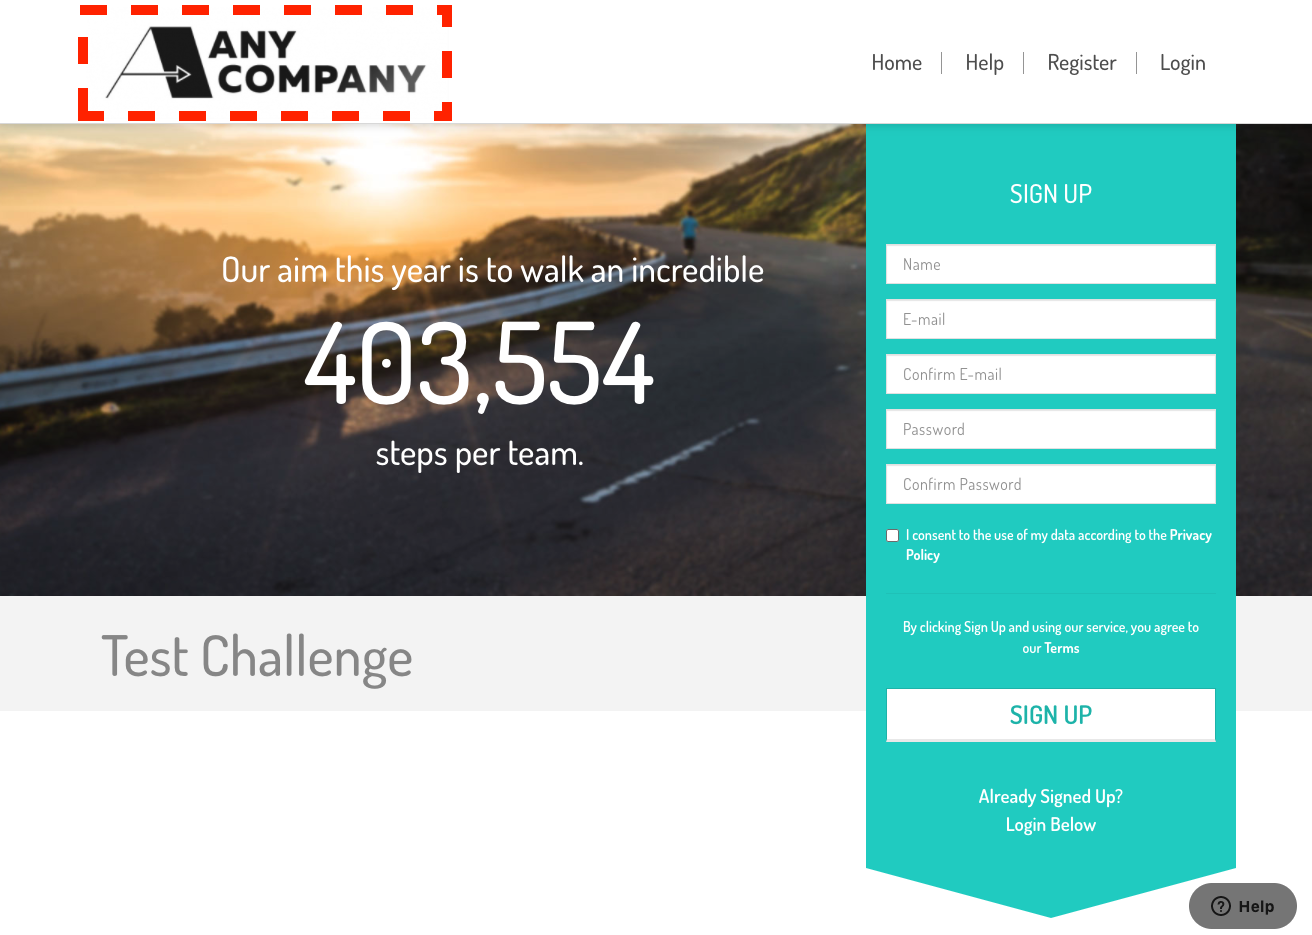 a screenshot of the landing page with the new logo added